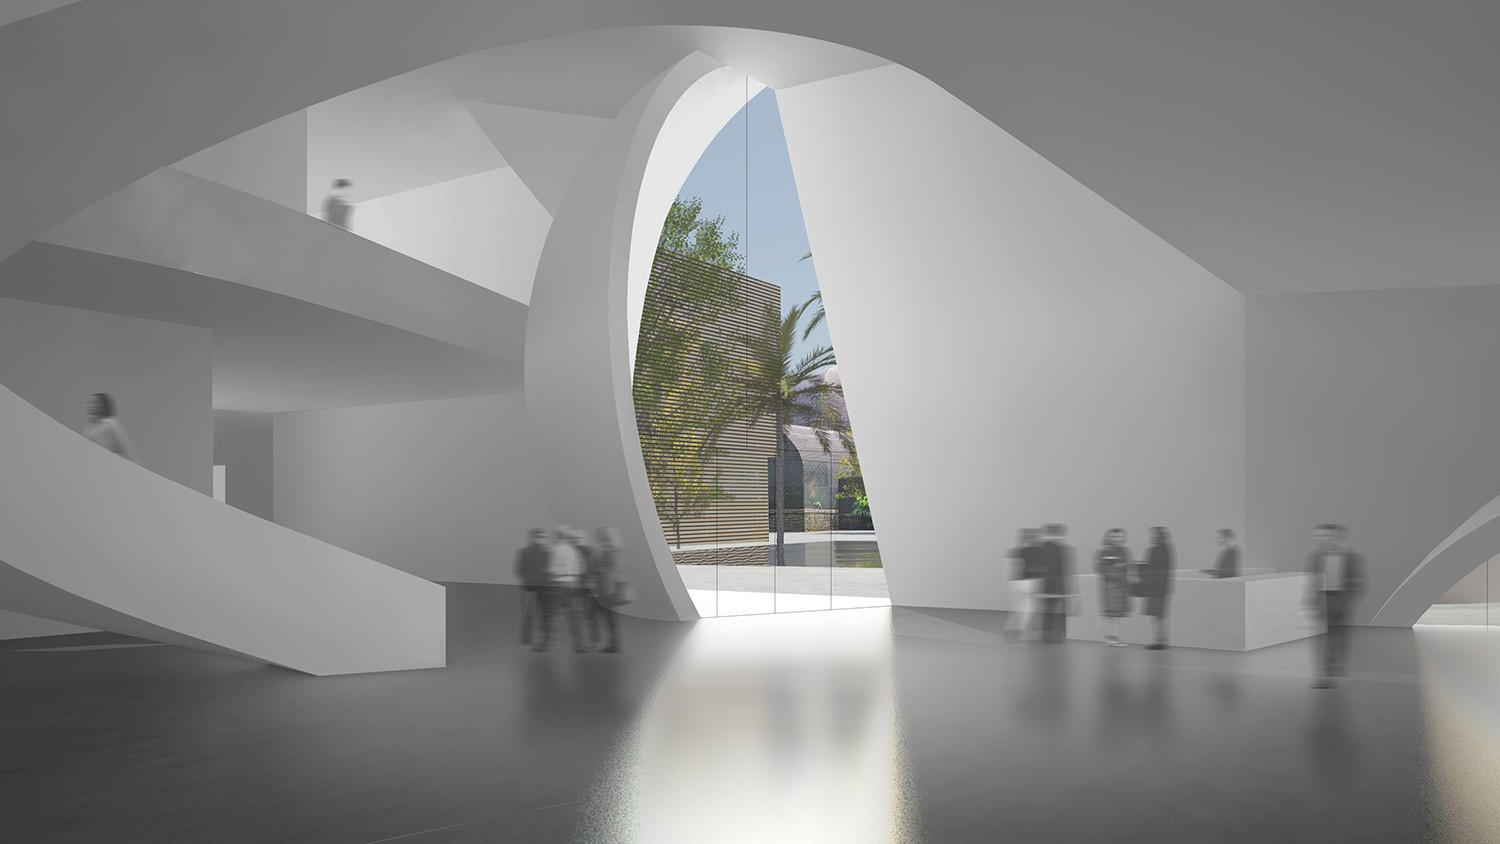 https://stevenholl.sfo2.digitaloceanspaces.com/uploads/projects/project-images/StevenHollArchitects_Mumbai_SHA_04_Lobby view_WH.jpg